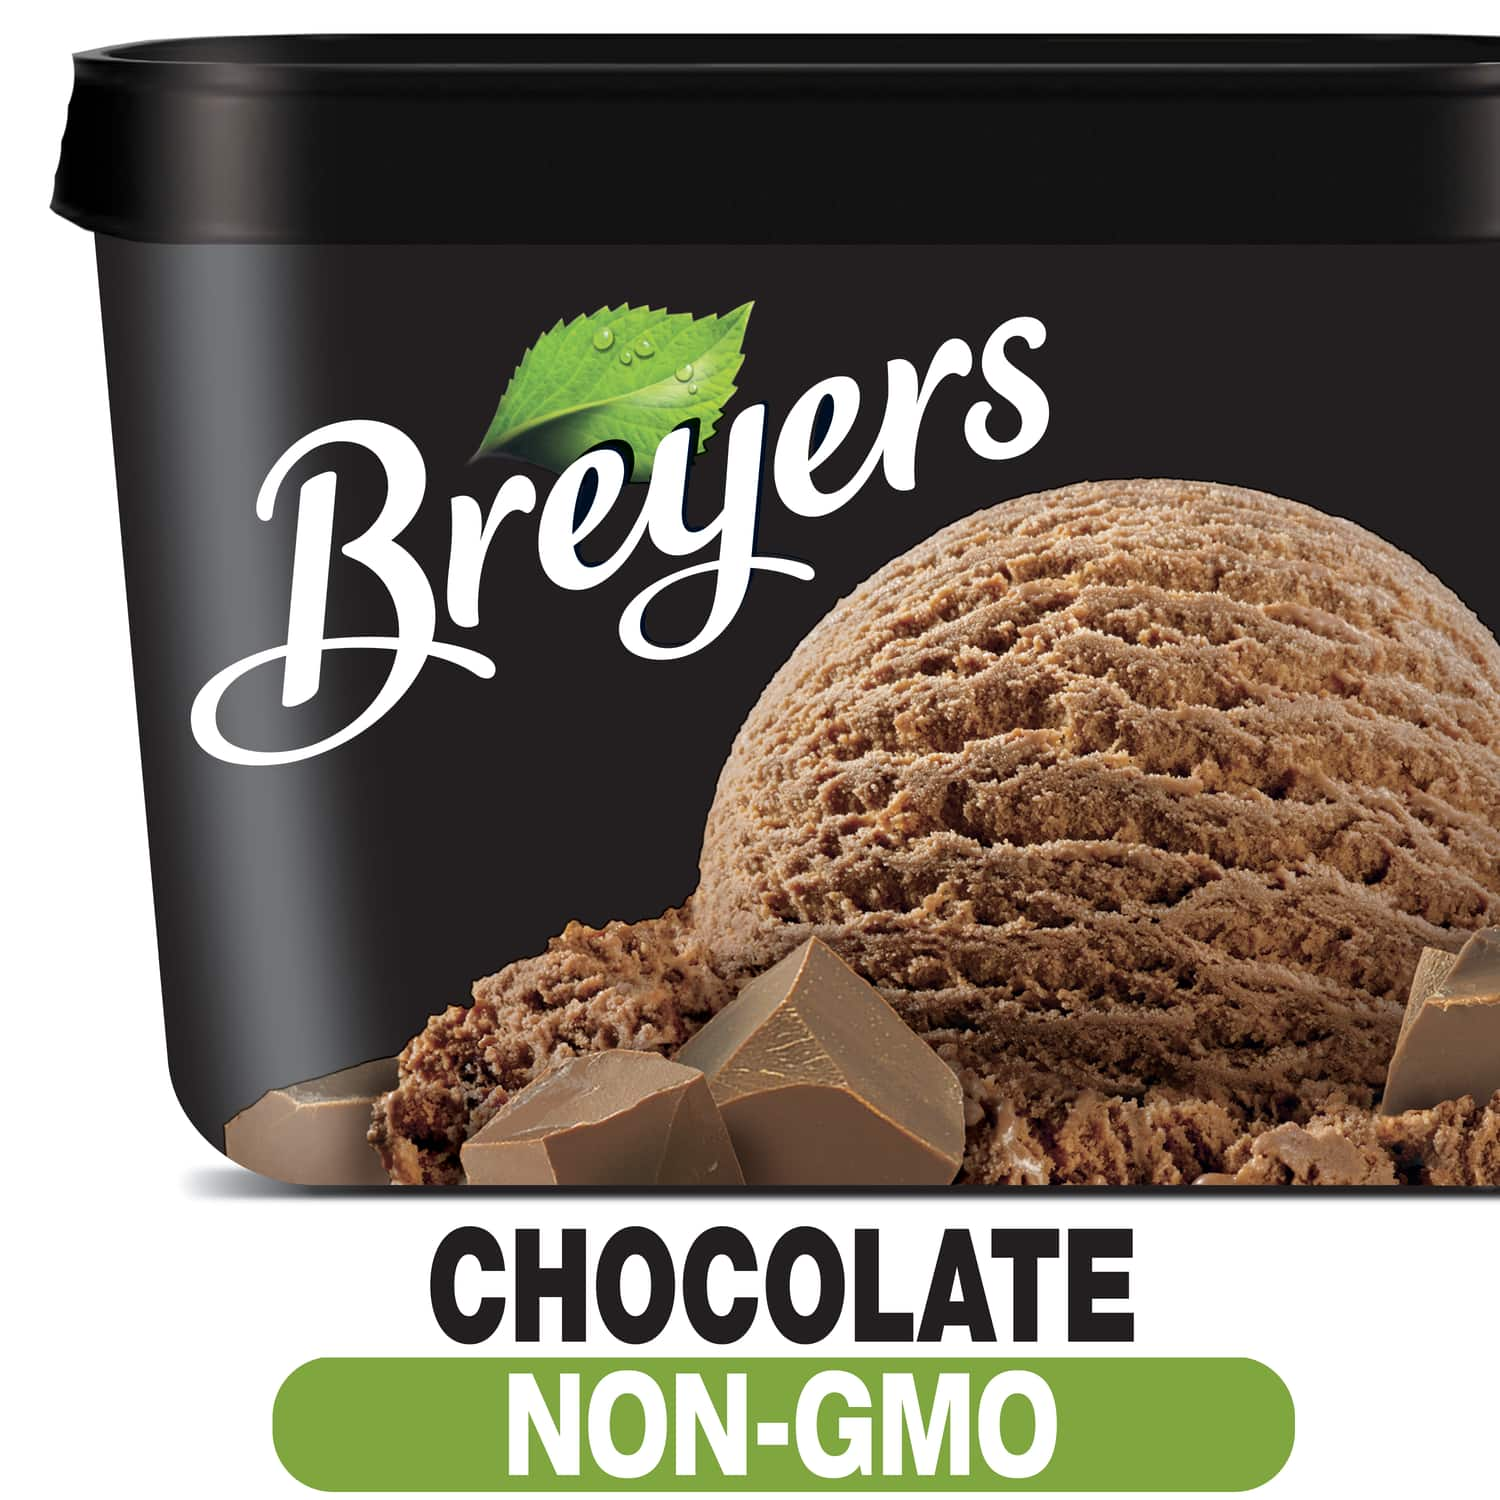 A 48 ounce tub of Breyers Chocolate simple pack image